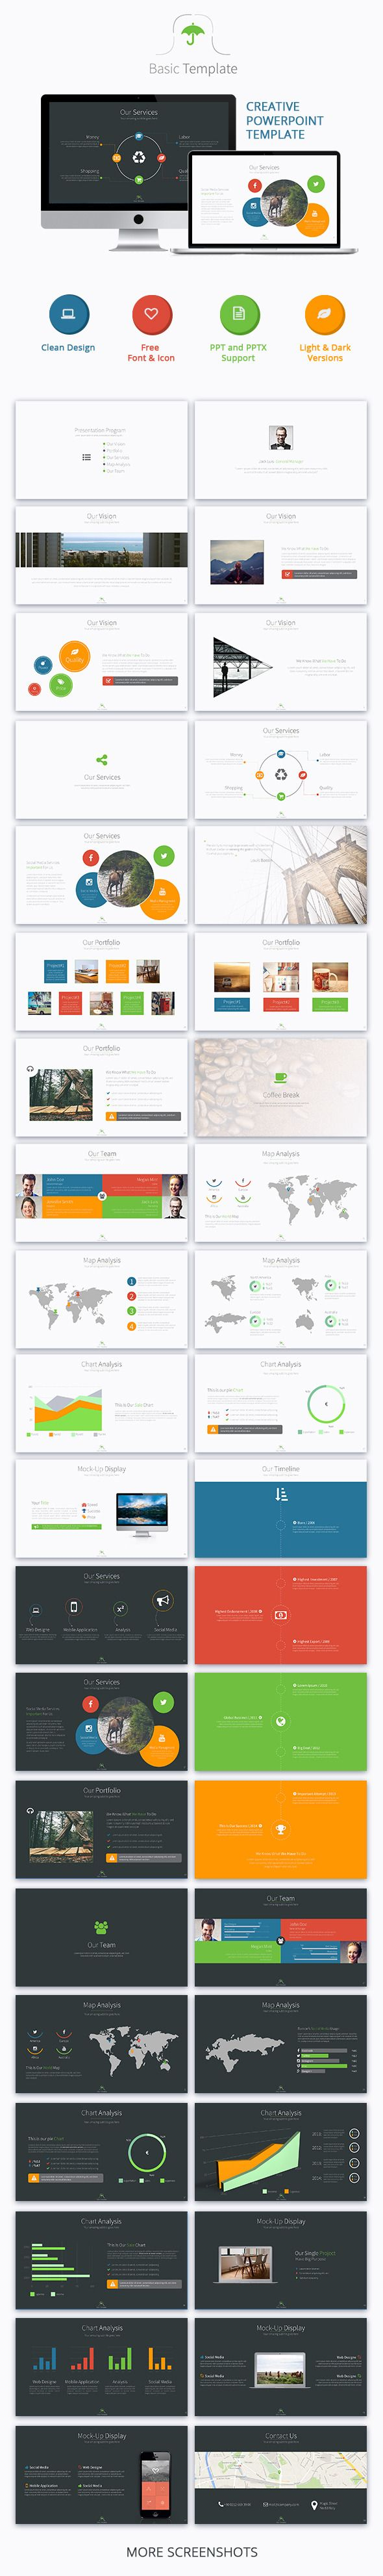 Pin By Best Graphic Design On Powerpoint Templates Pinterest